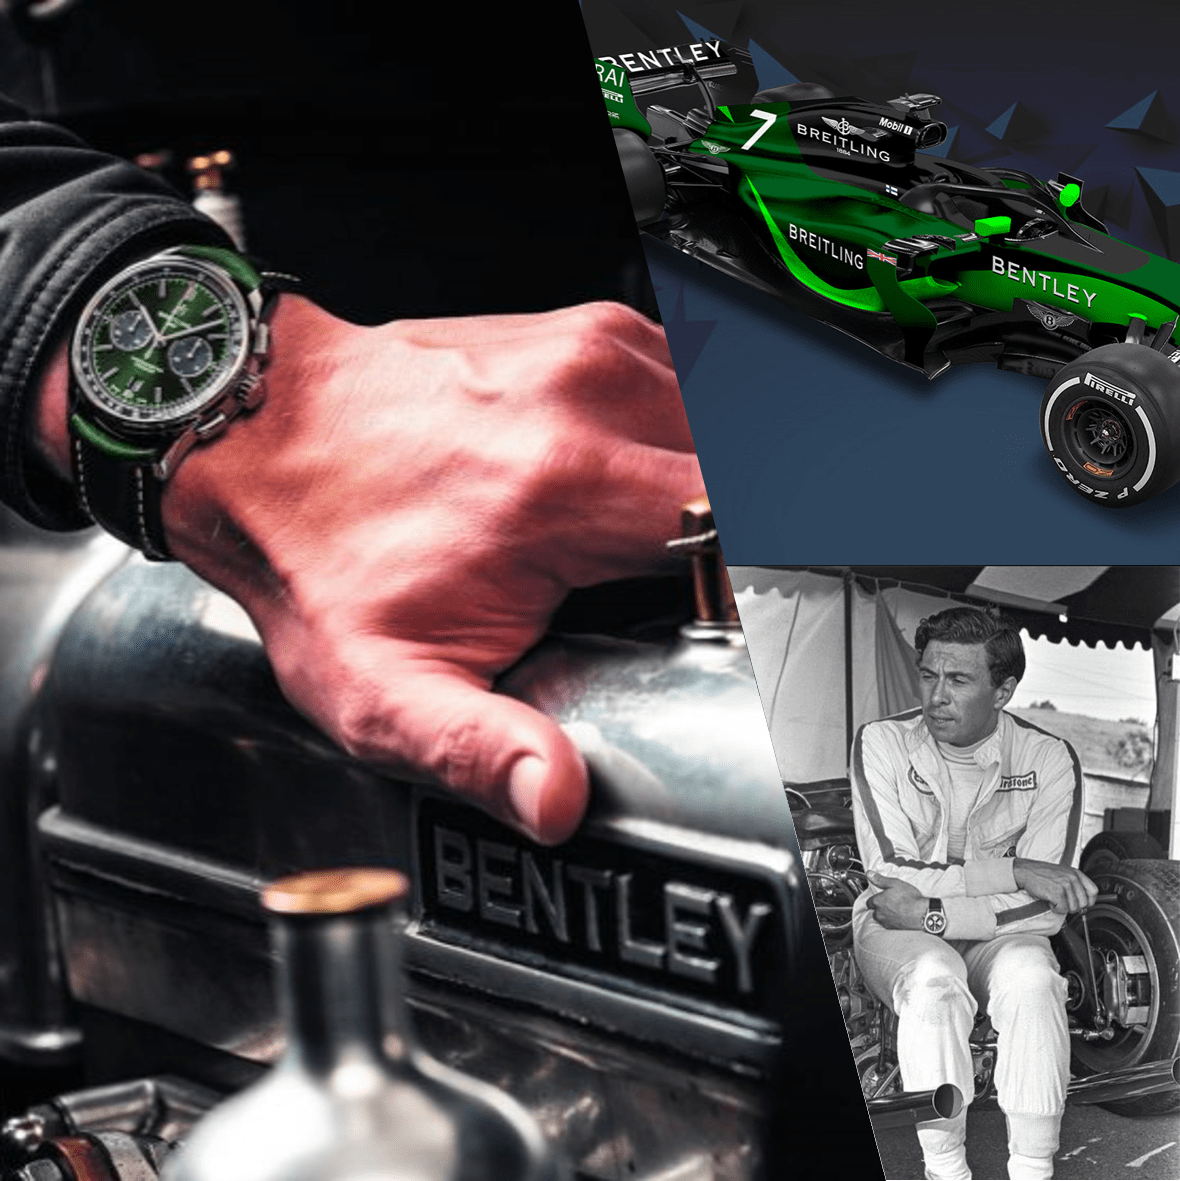 Racing Watches: Breitling & F1